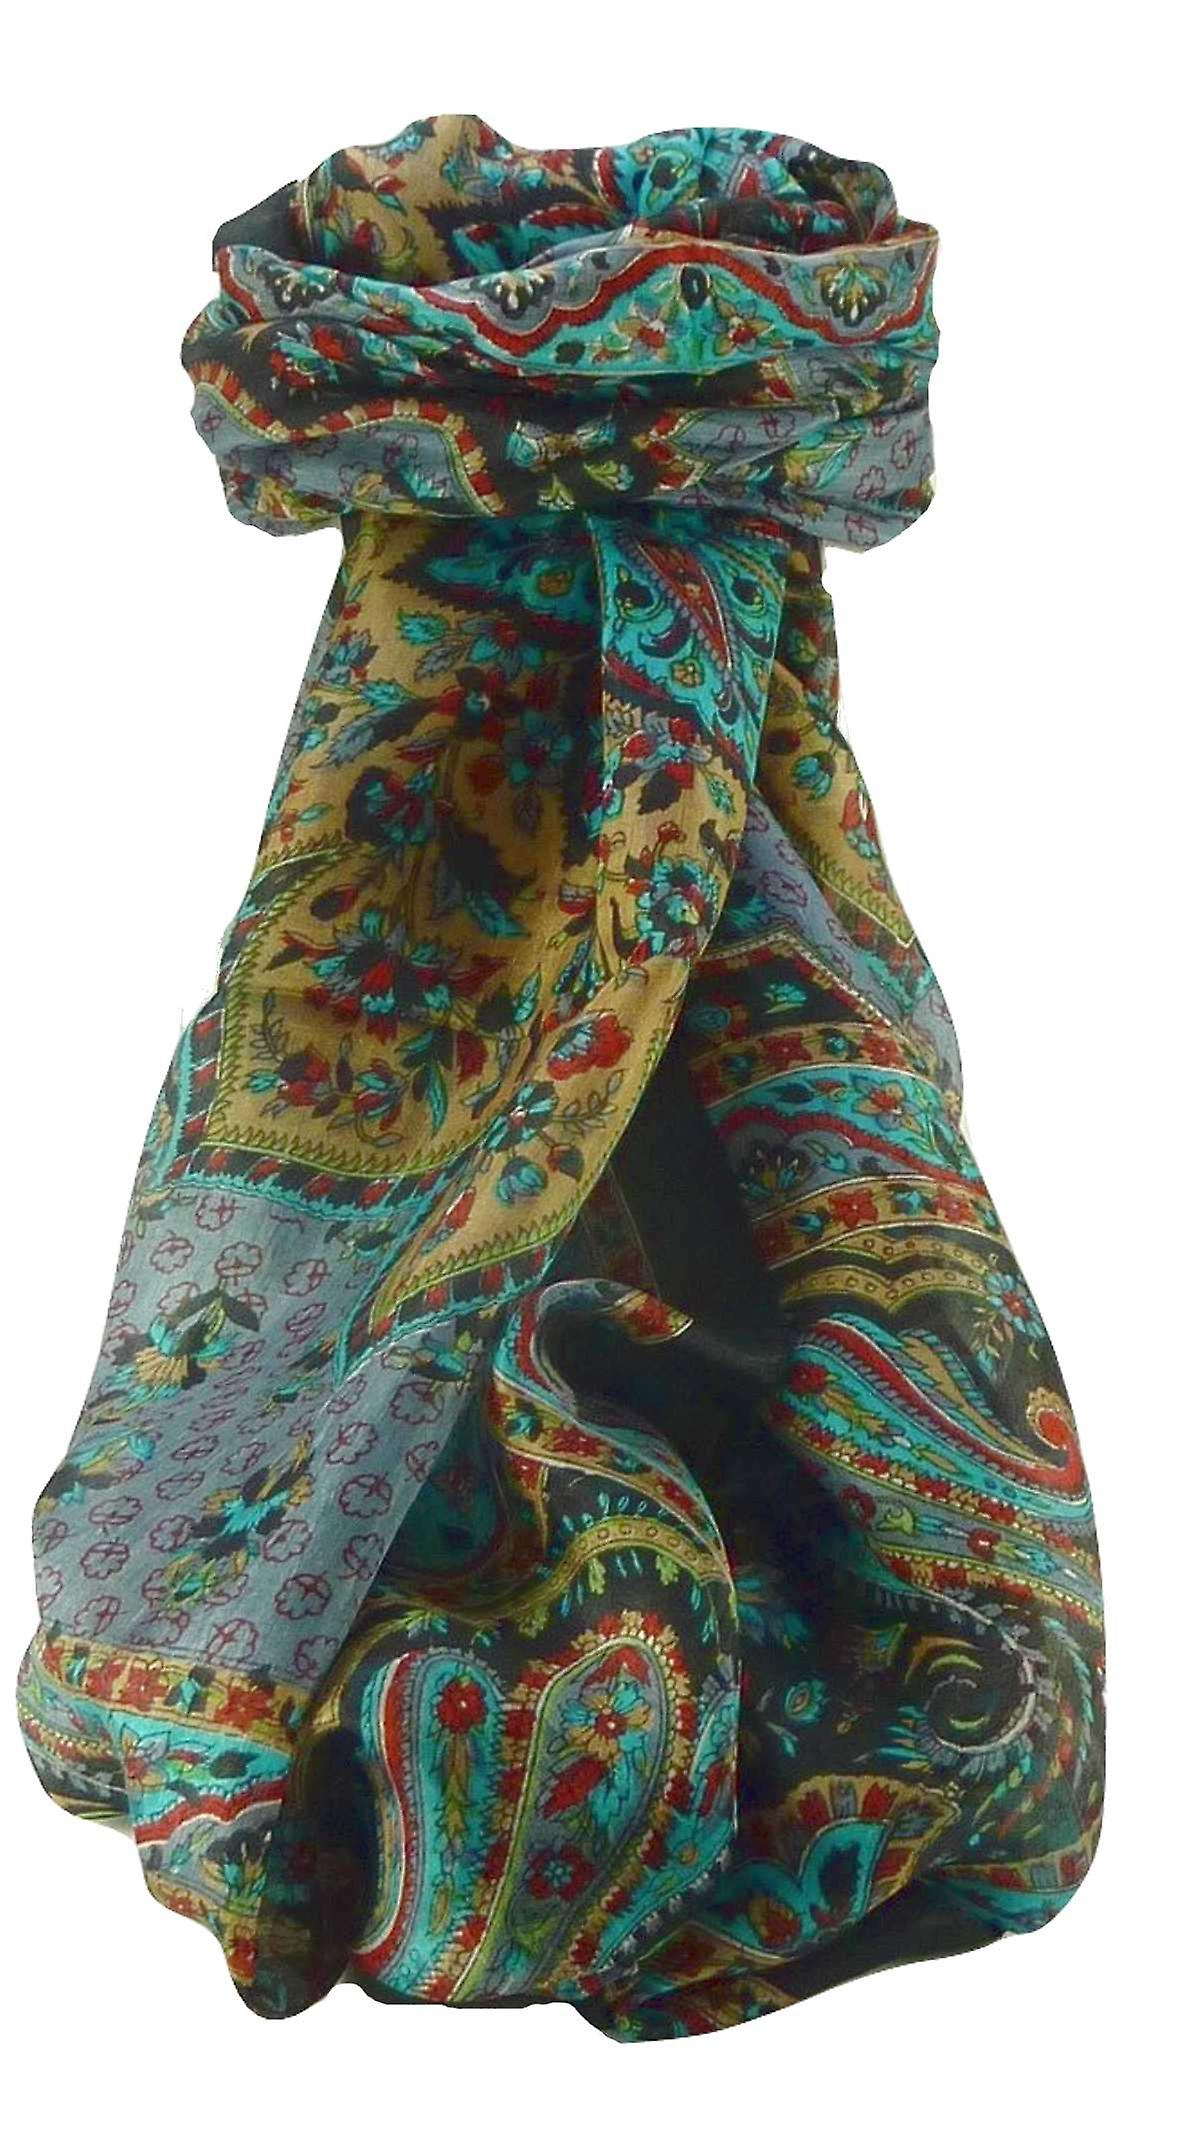 Mulberry Silk Traditional Long Scarf Cauver Black by Pashmina & Silk